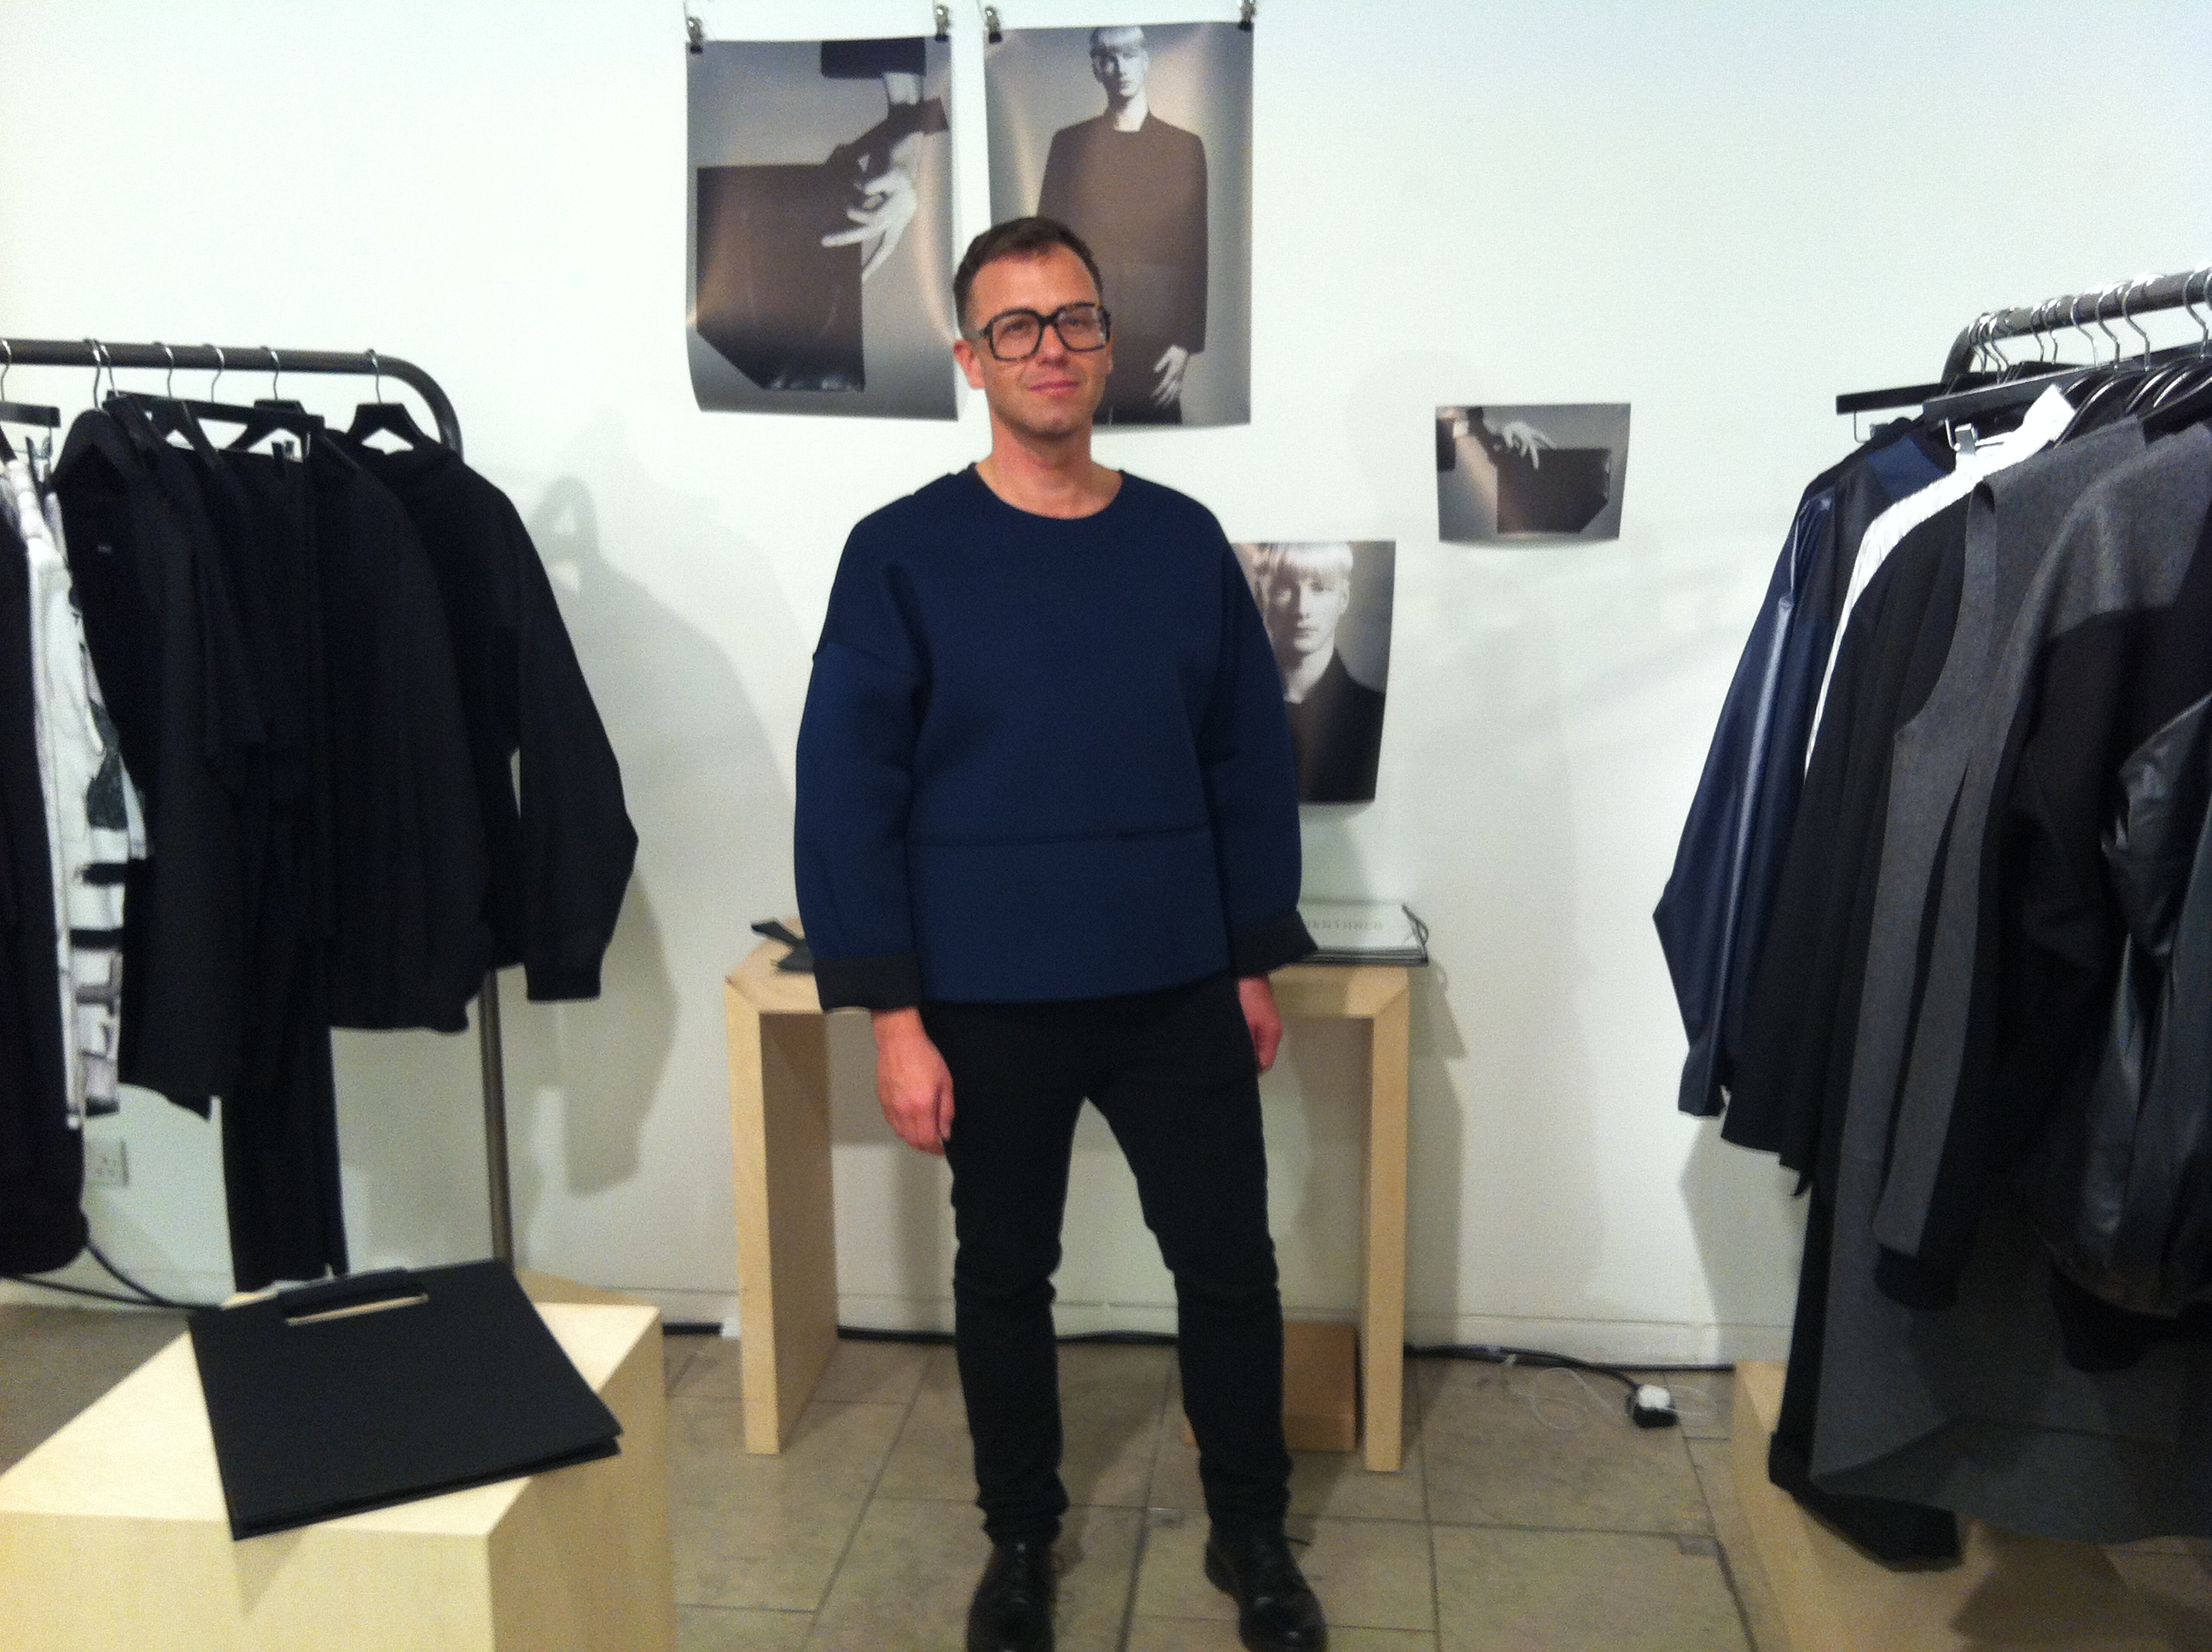 Berthold (Men fashion designer)